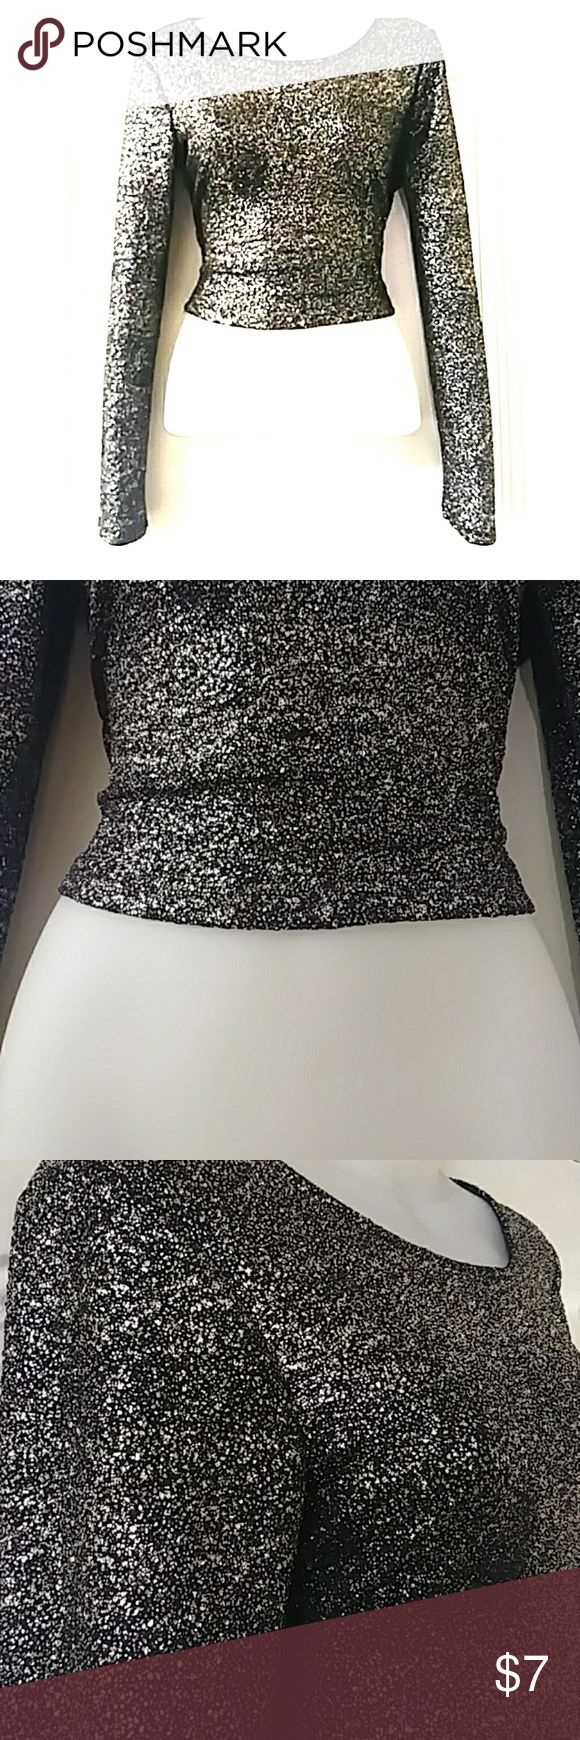 WOMENS TOP SIZE L FOREVER 21~FUN BLACK & SILVER SPARKLY TOP SIZE L FOREVER 21 Tops Crop Tops